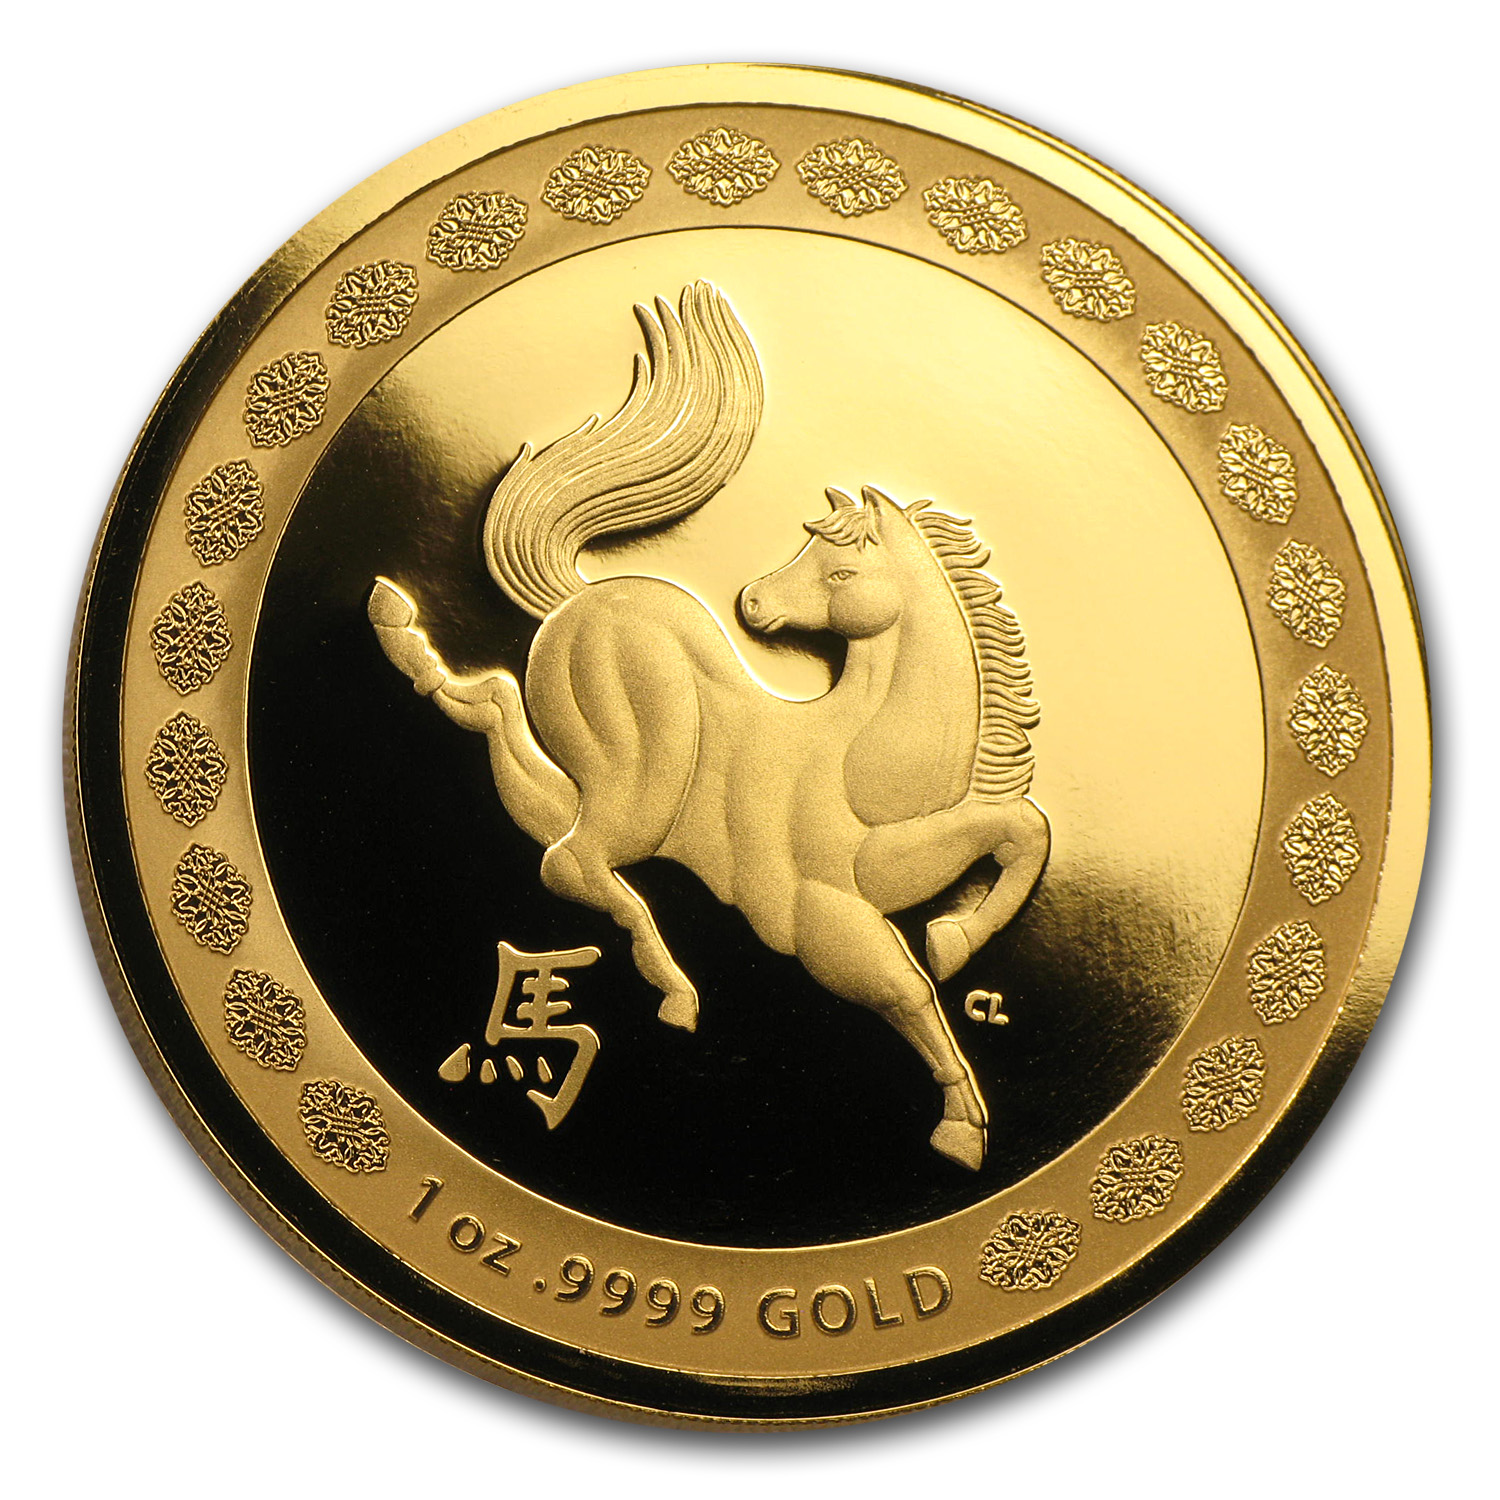 2014 1 oz Gold Royal Australian Mint Year of the Horse Proof